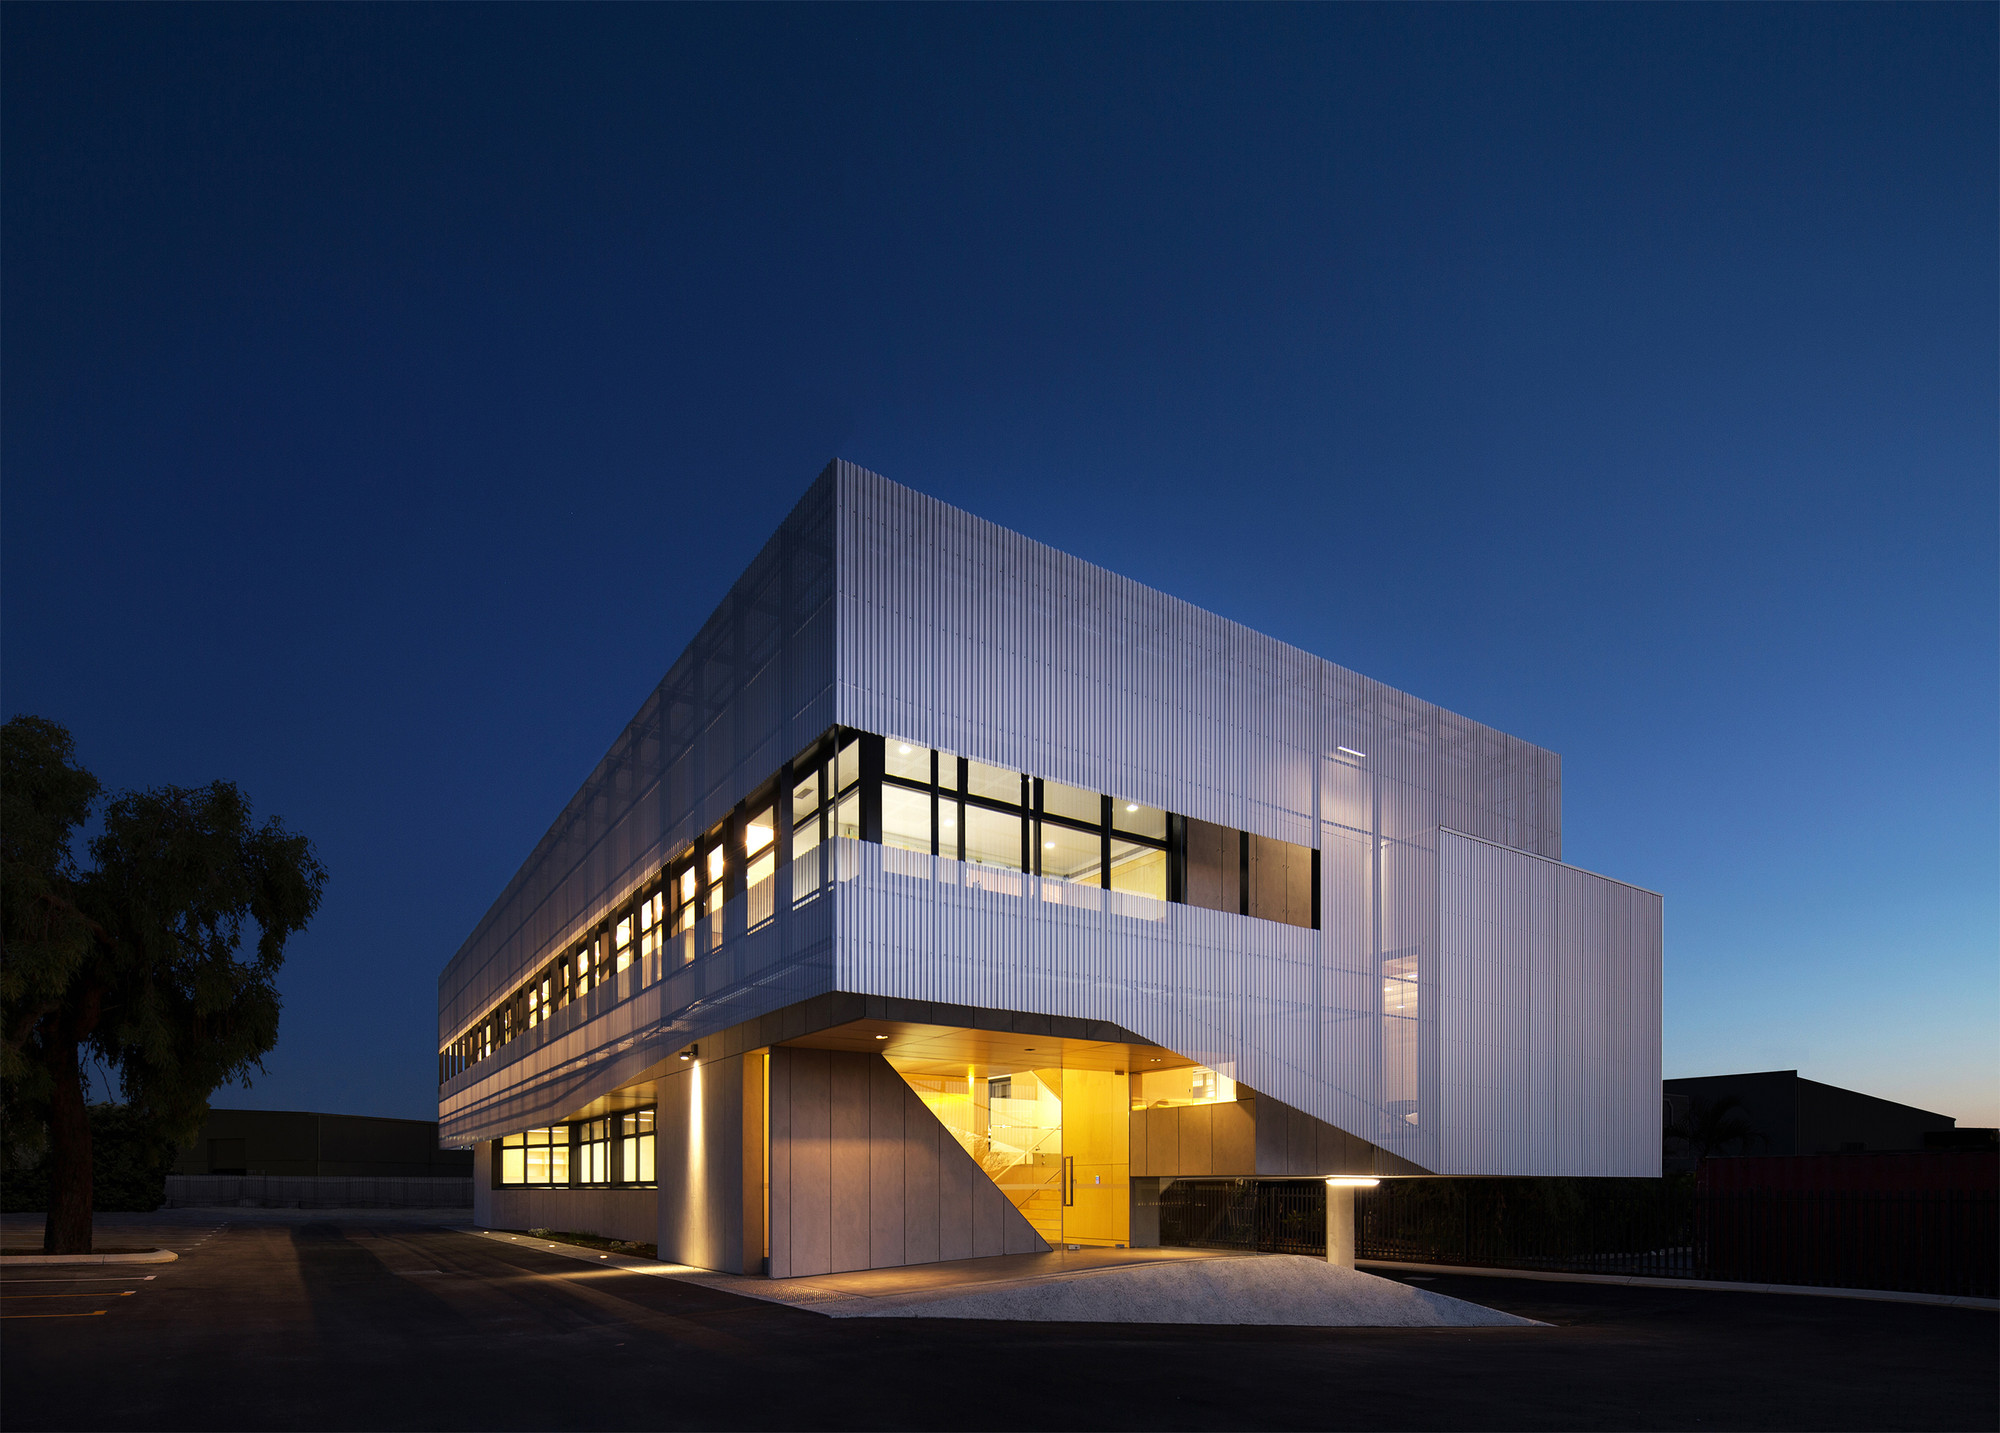 Sanwell office building braham architects archdaily for Architecture building design